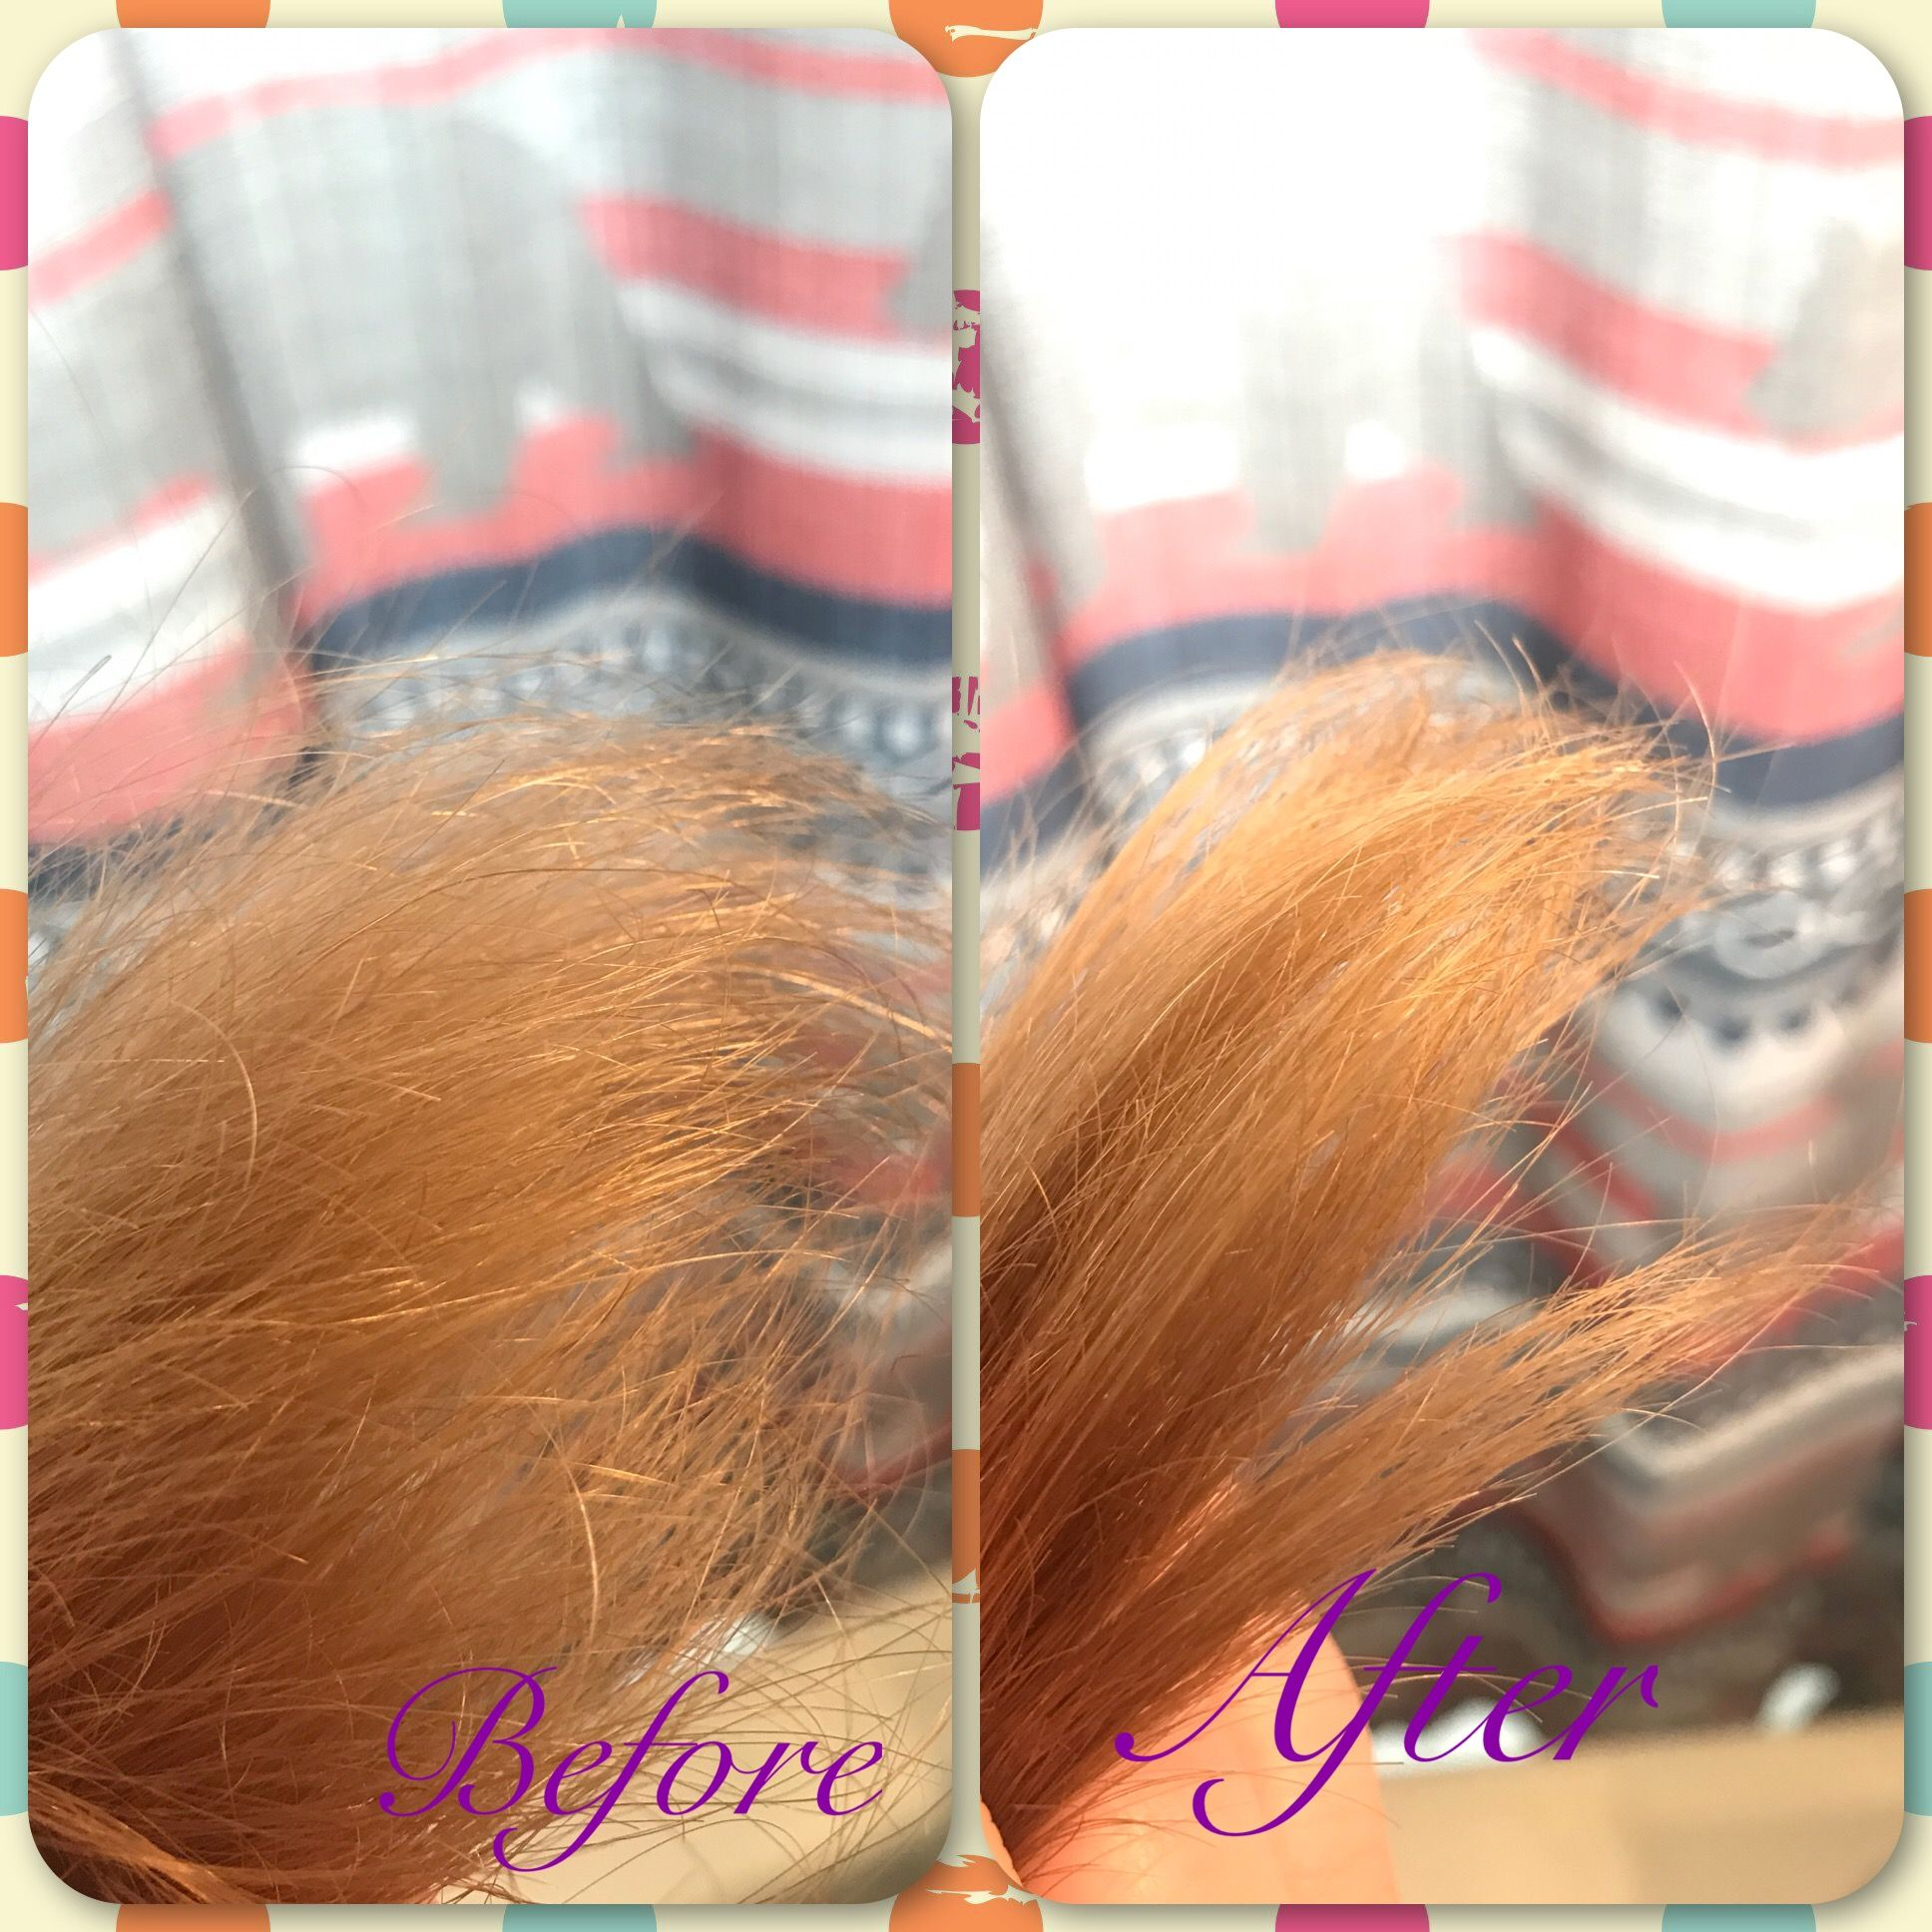 Rejuvabeads instant results. Before and after! (With